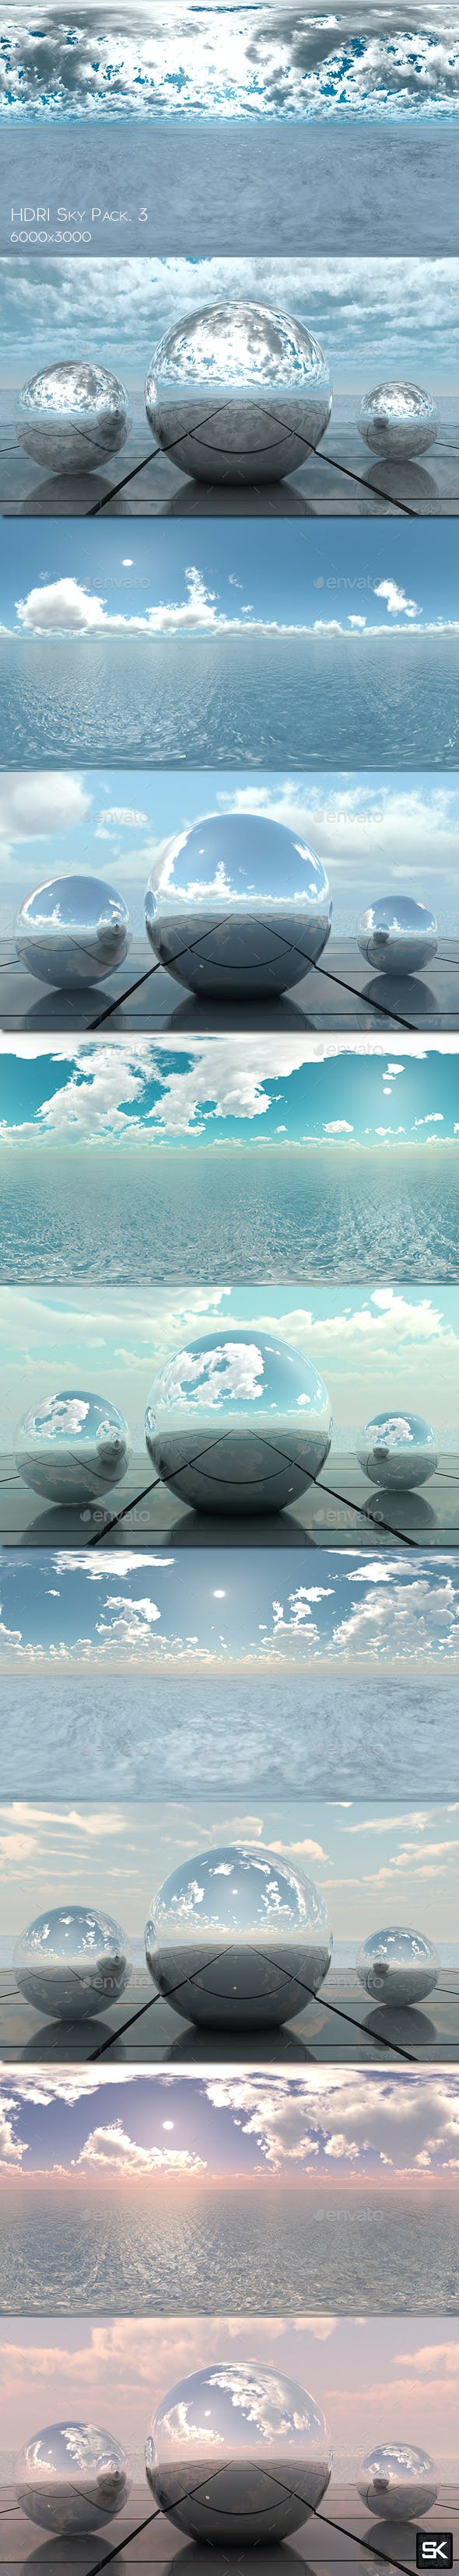 HDRI Pack Sky.3 - 3DOcean Item for Sale